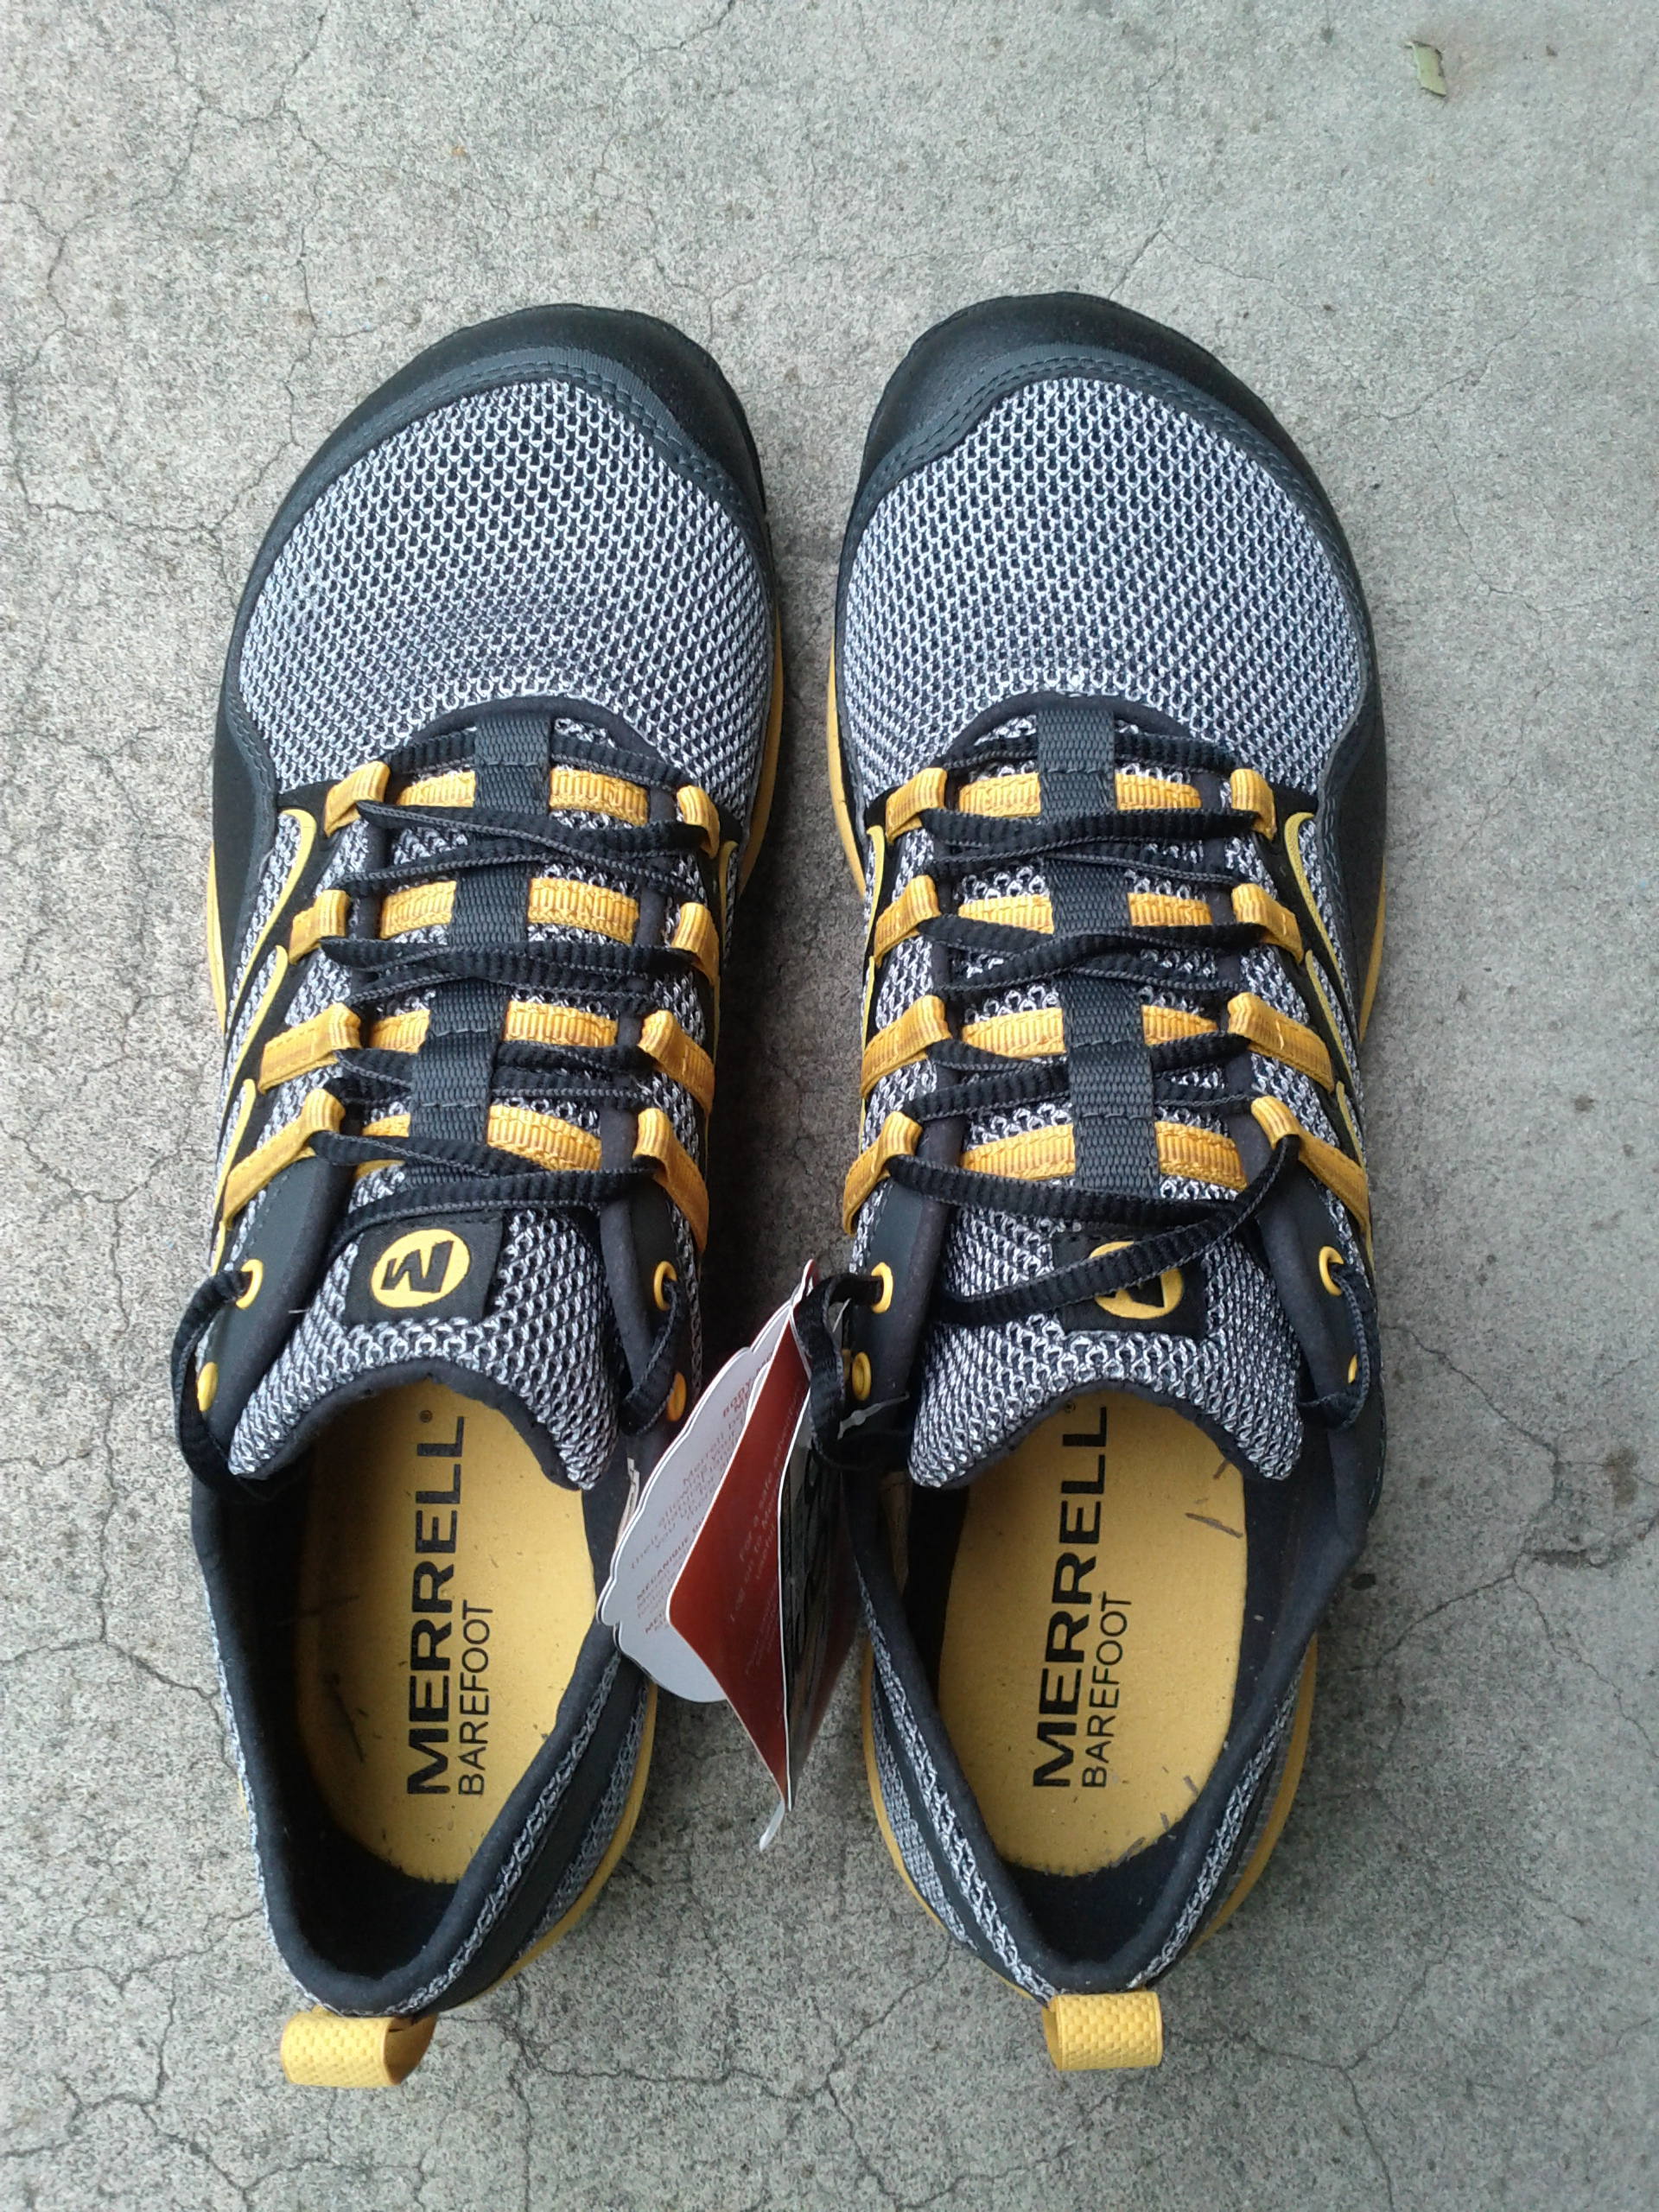 Large Toe Box Trail Running Shoes